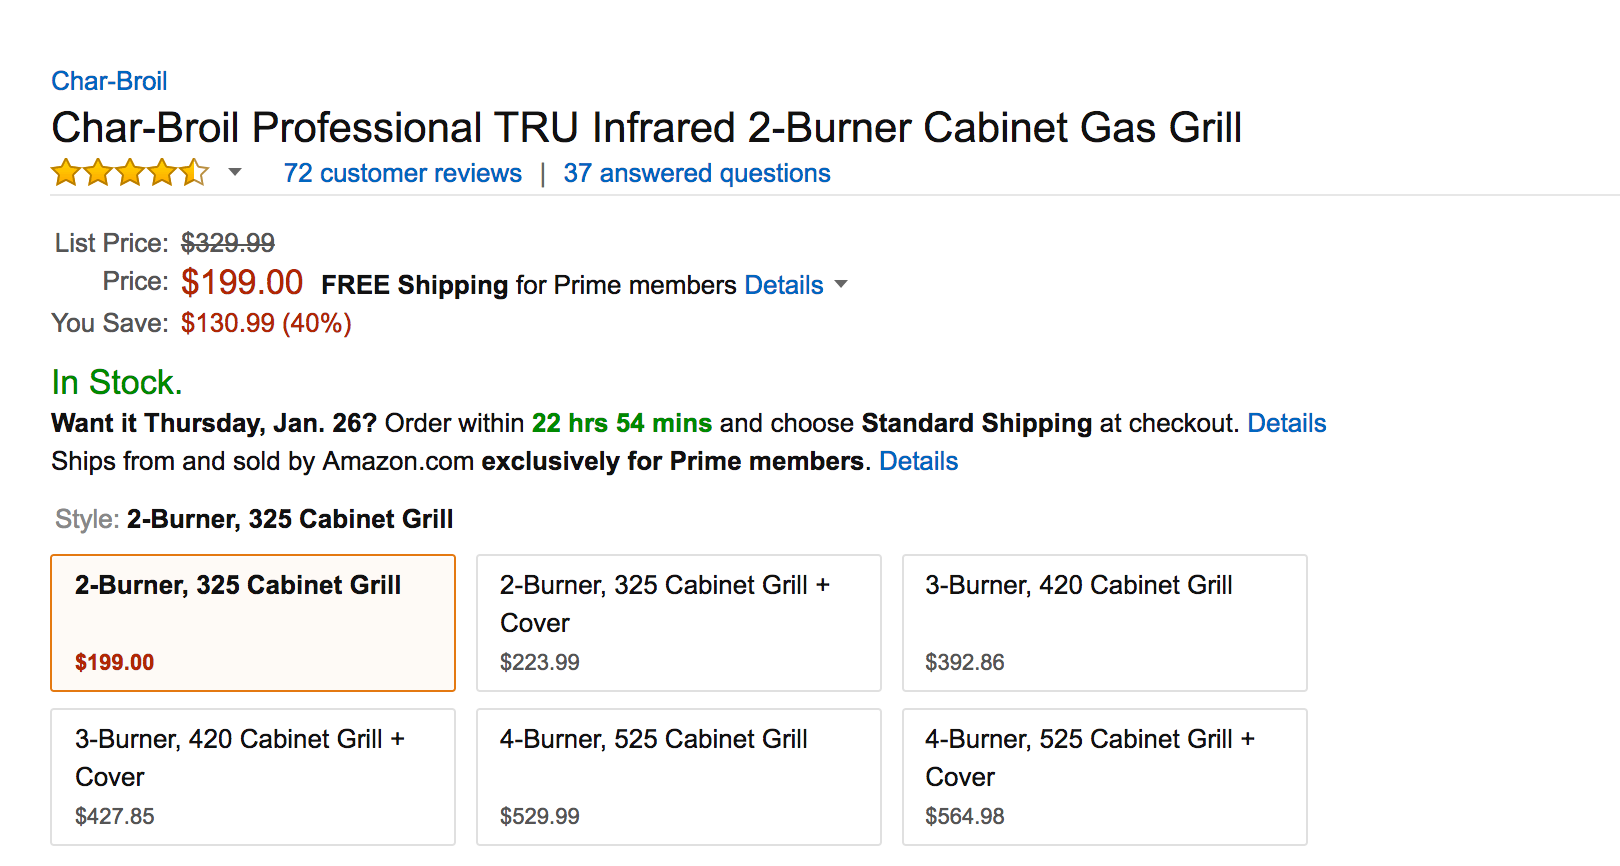 char-broil-professional-tru-infrared-2-burner-cabinet-gas-grill-2